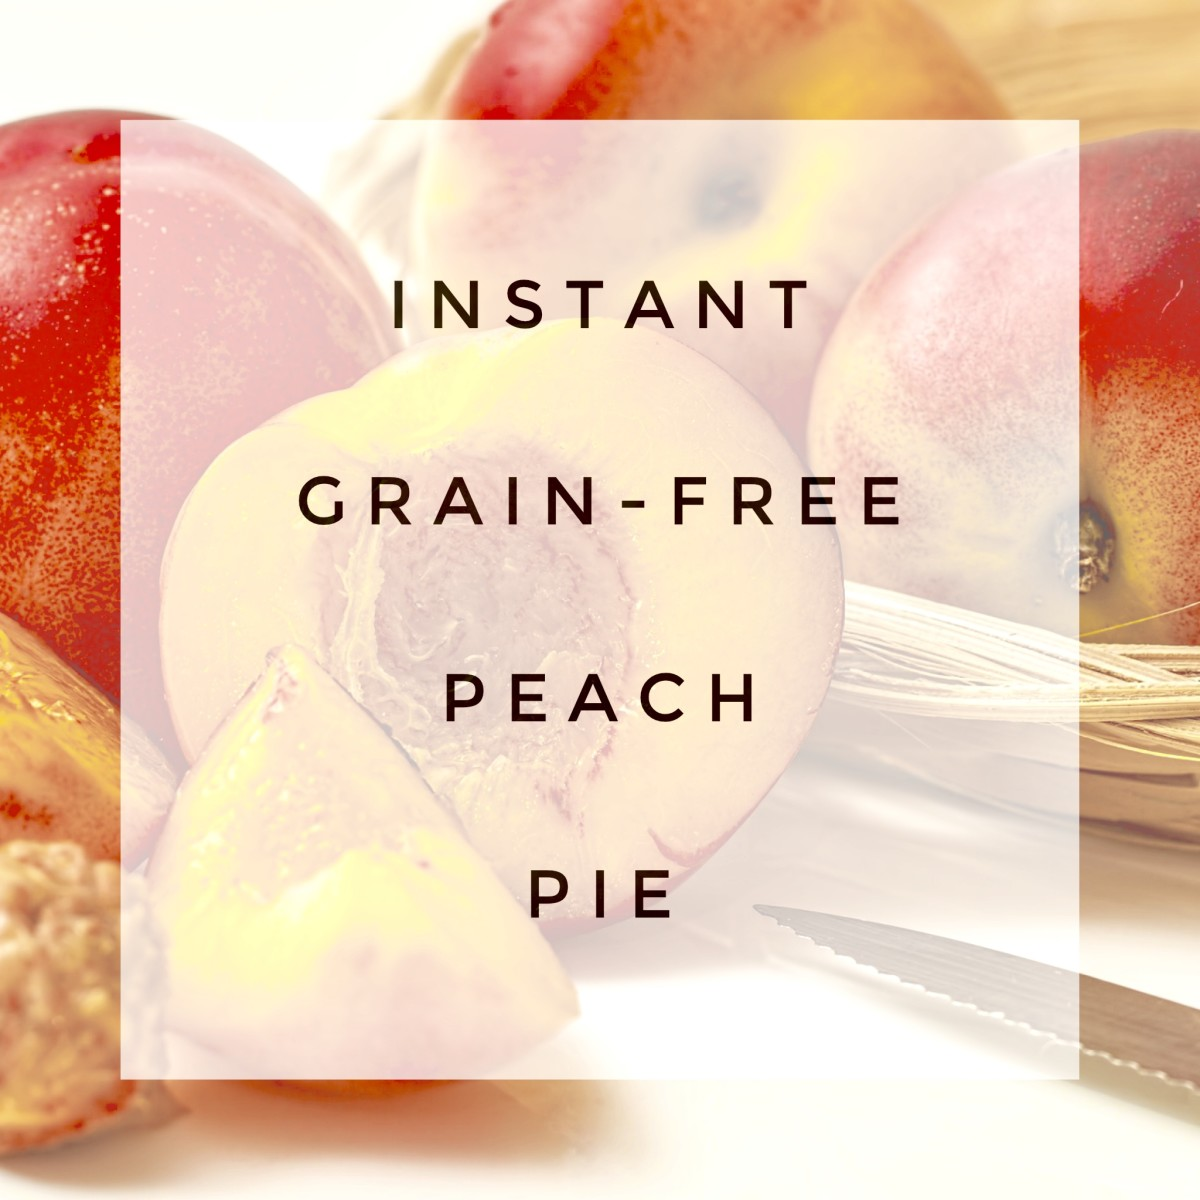 This recipe for a fast, fresh peach pie filling can be made in the microwave—enjoy all the flavors of peach pie without  the crust!